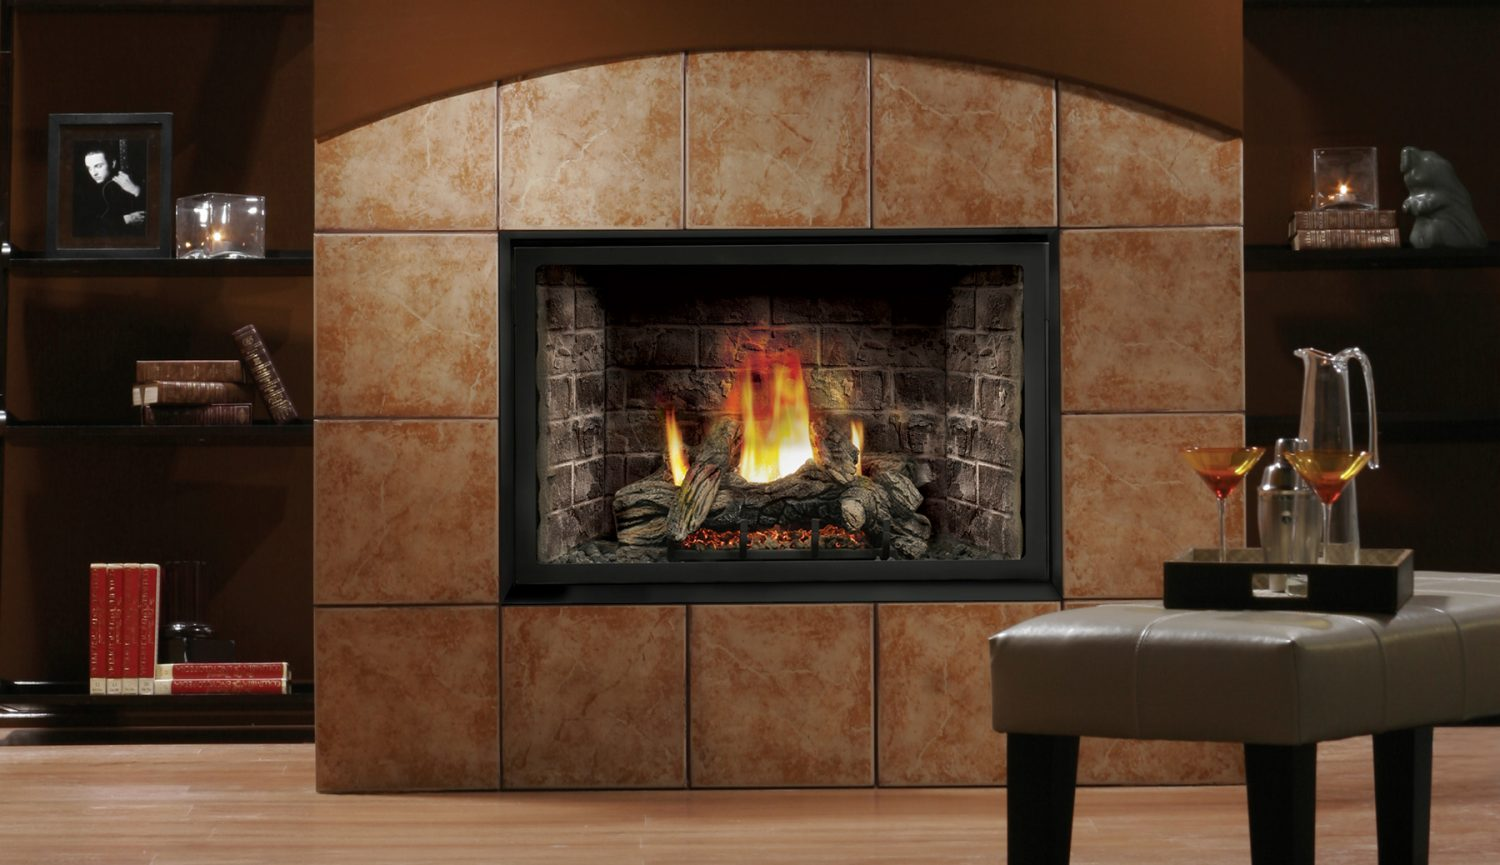 Kingsman HBZDV3624 28 Direct Vent Gas Fireplace